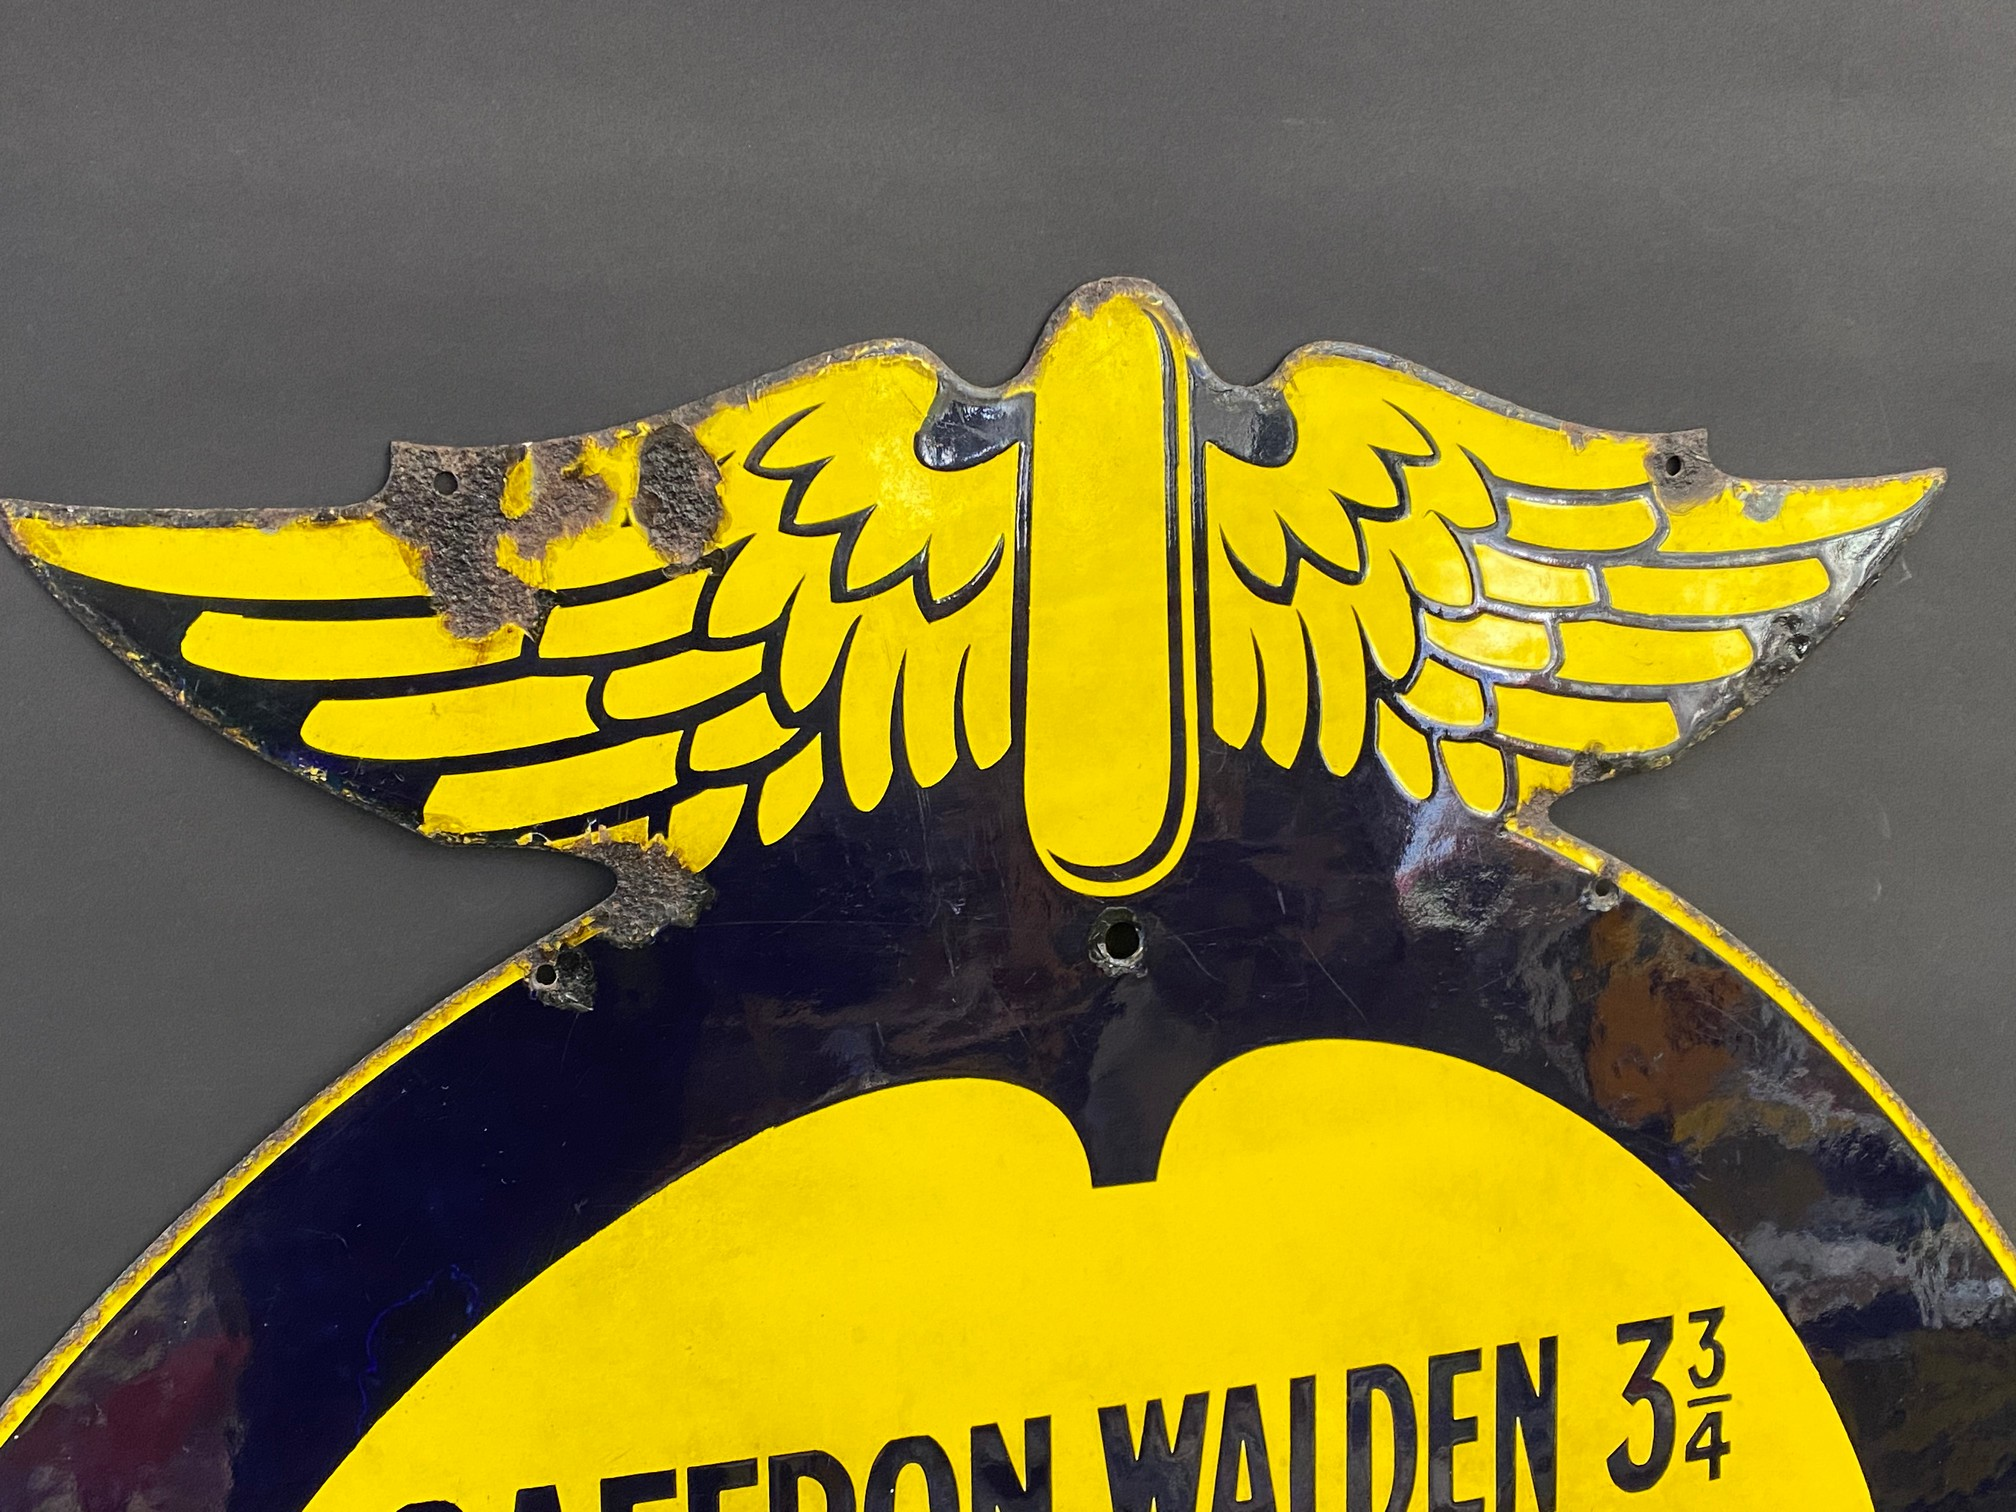 An early AA and Motor Union enamel location sign for Howlett End, Saffron Waldon 3 3/4 miles, the - Image 2 of 6